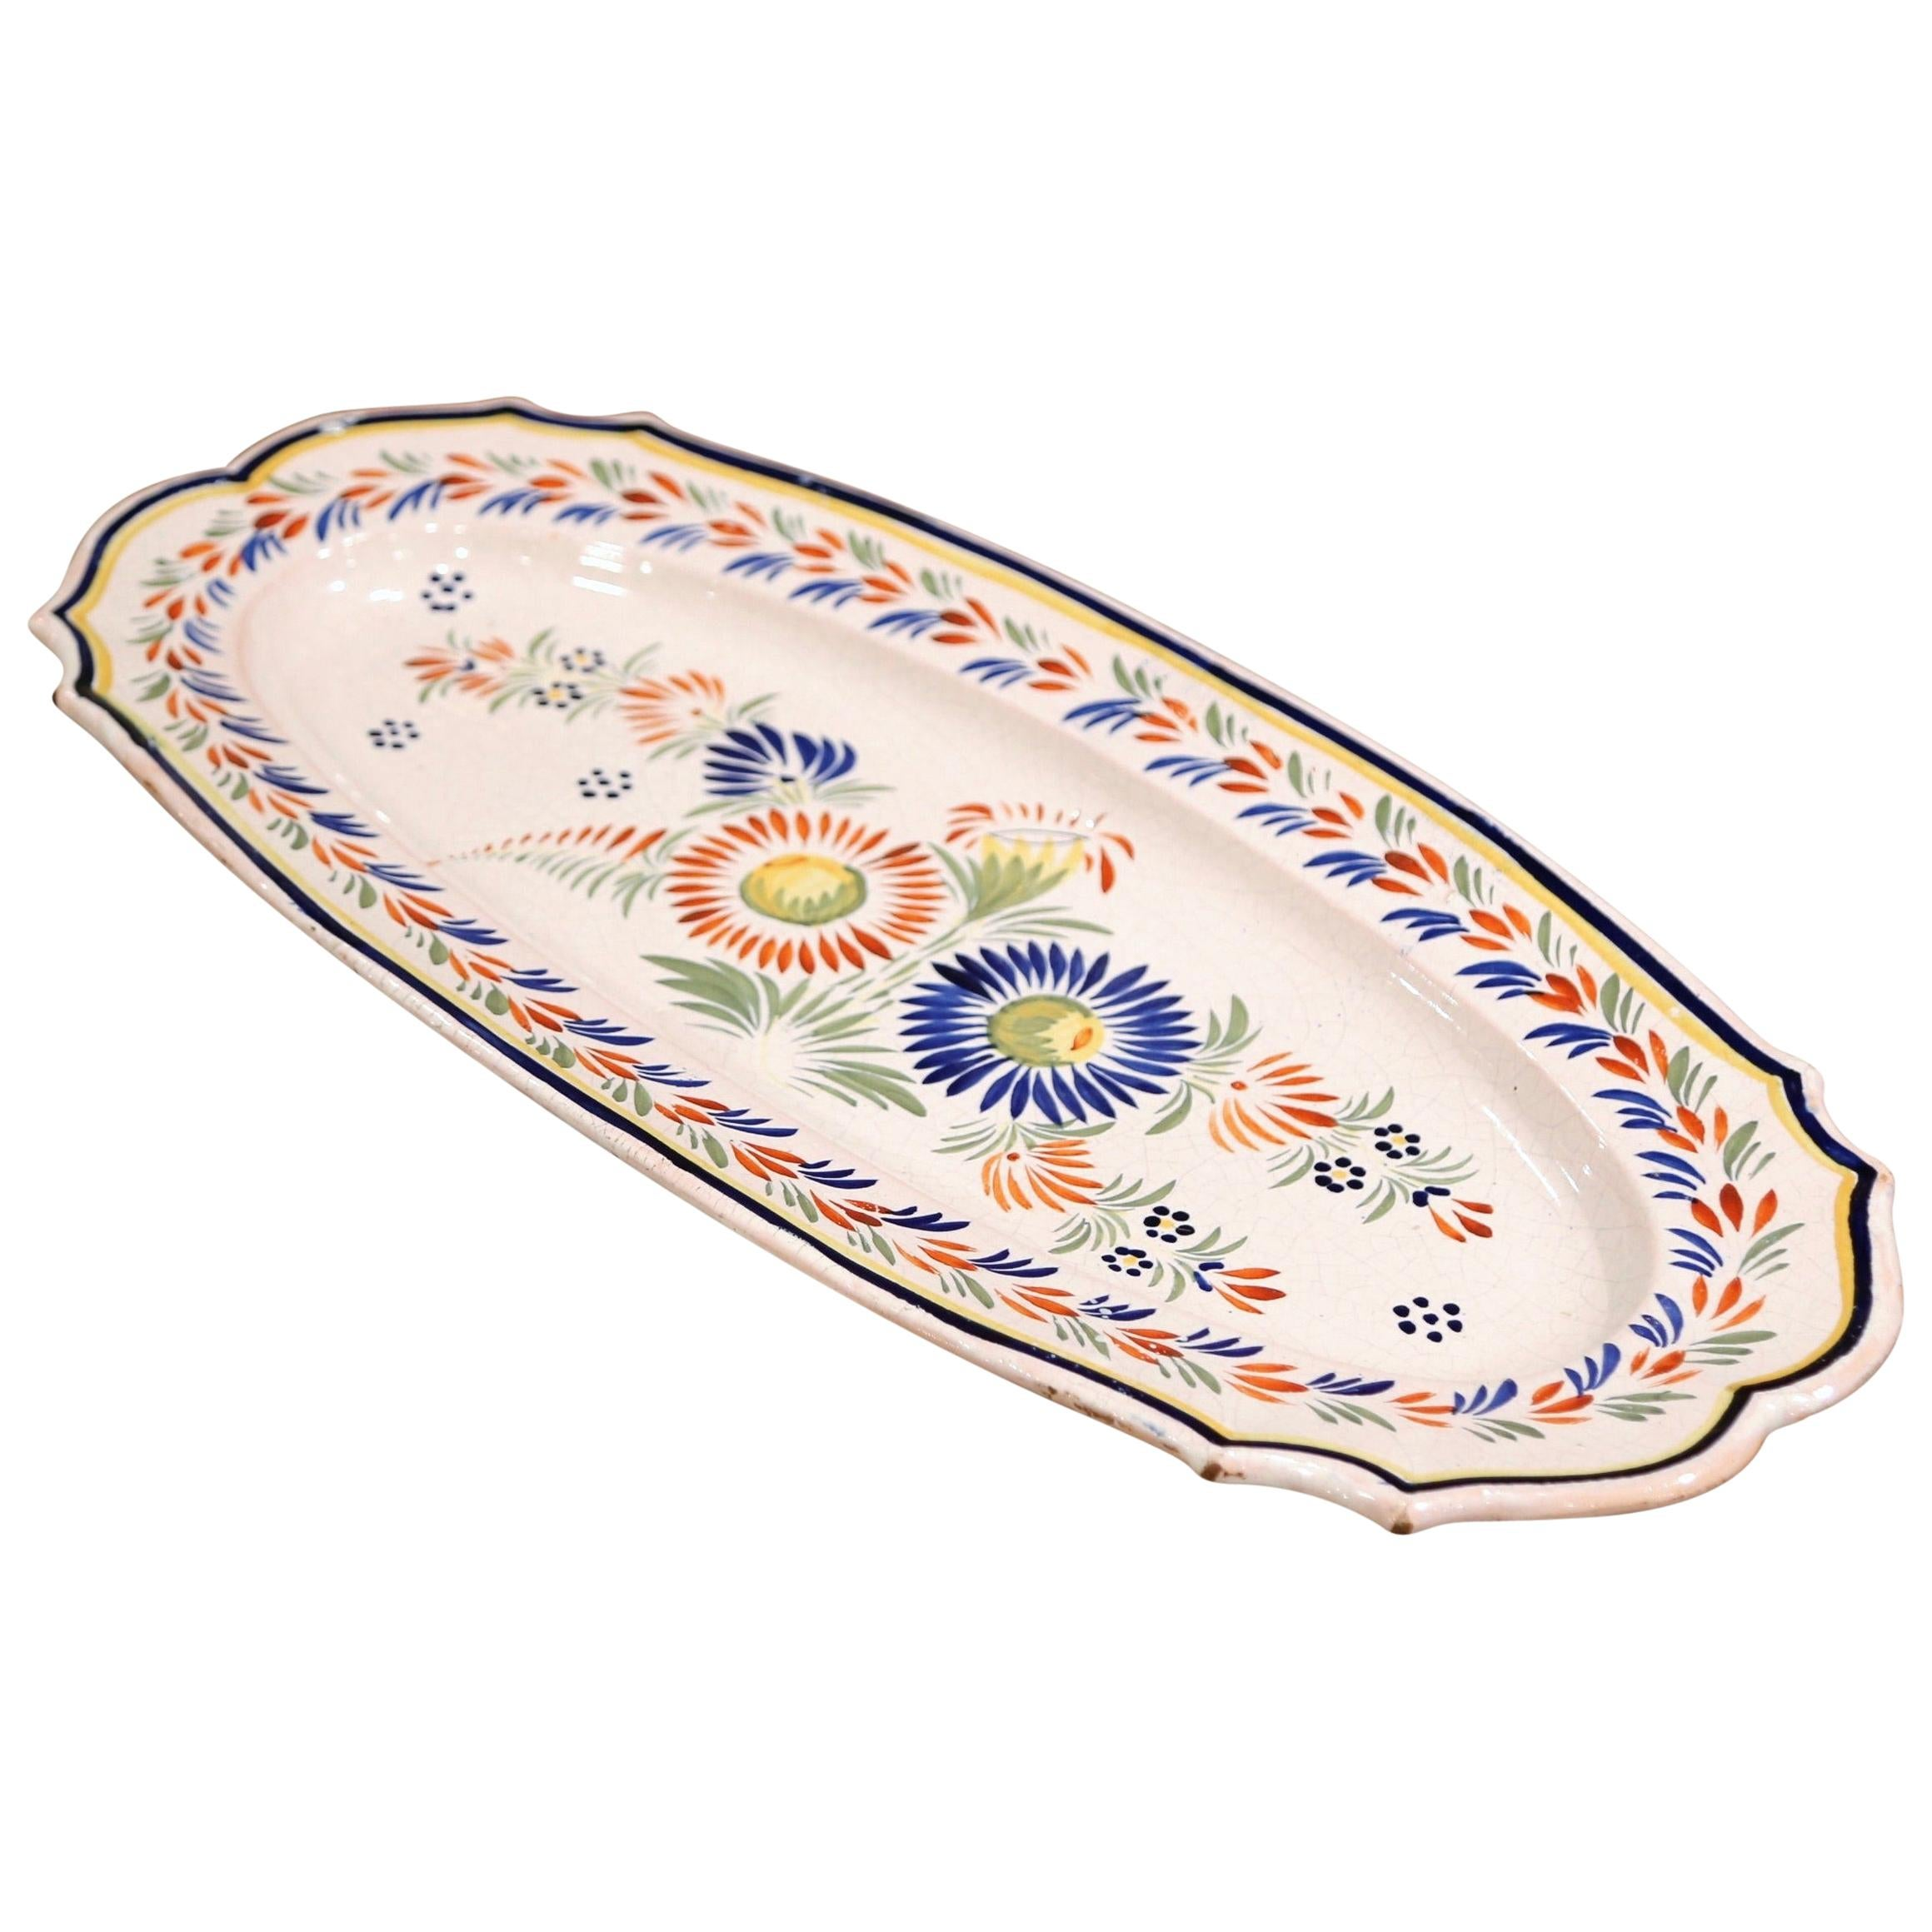 Mid-20th Century French Hand Painted Faience Fish Platter Quimper Style